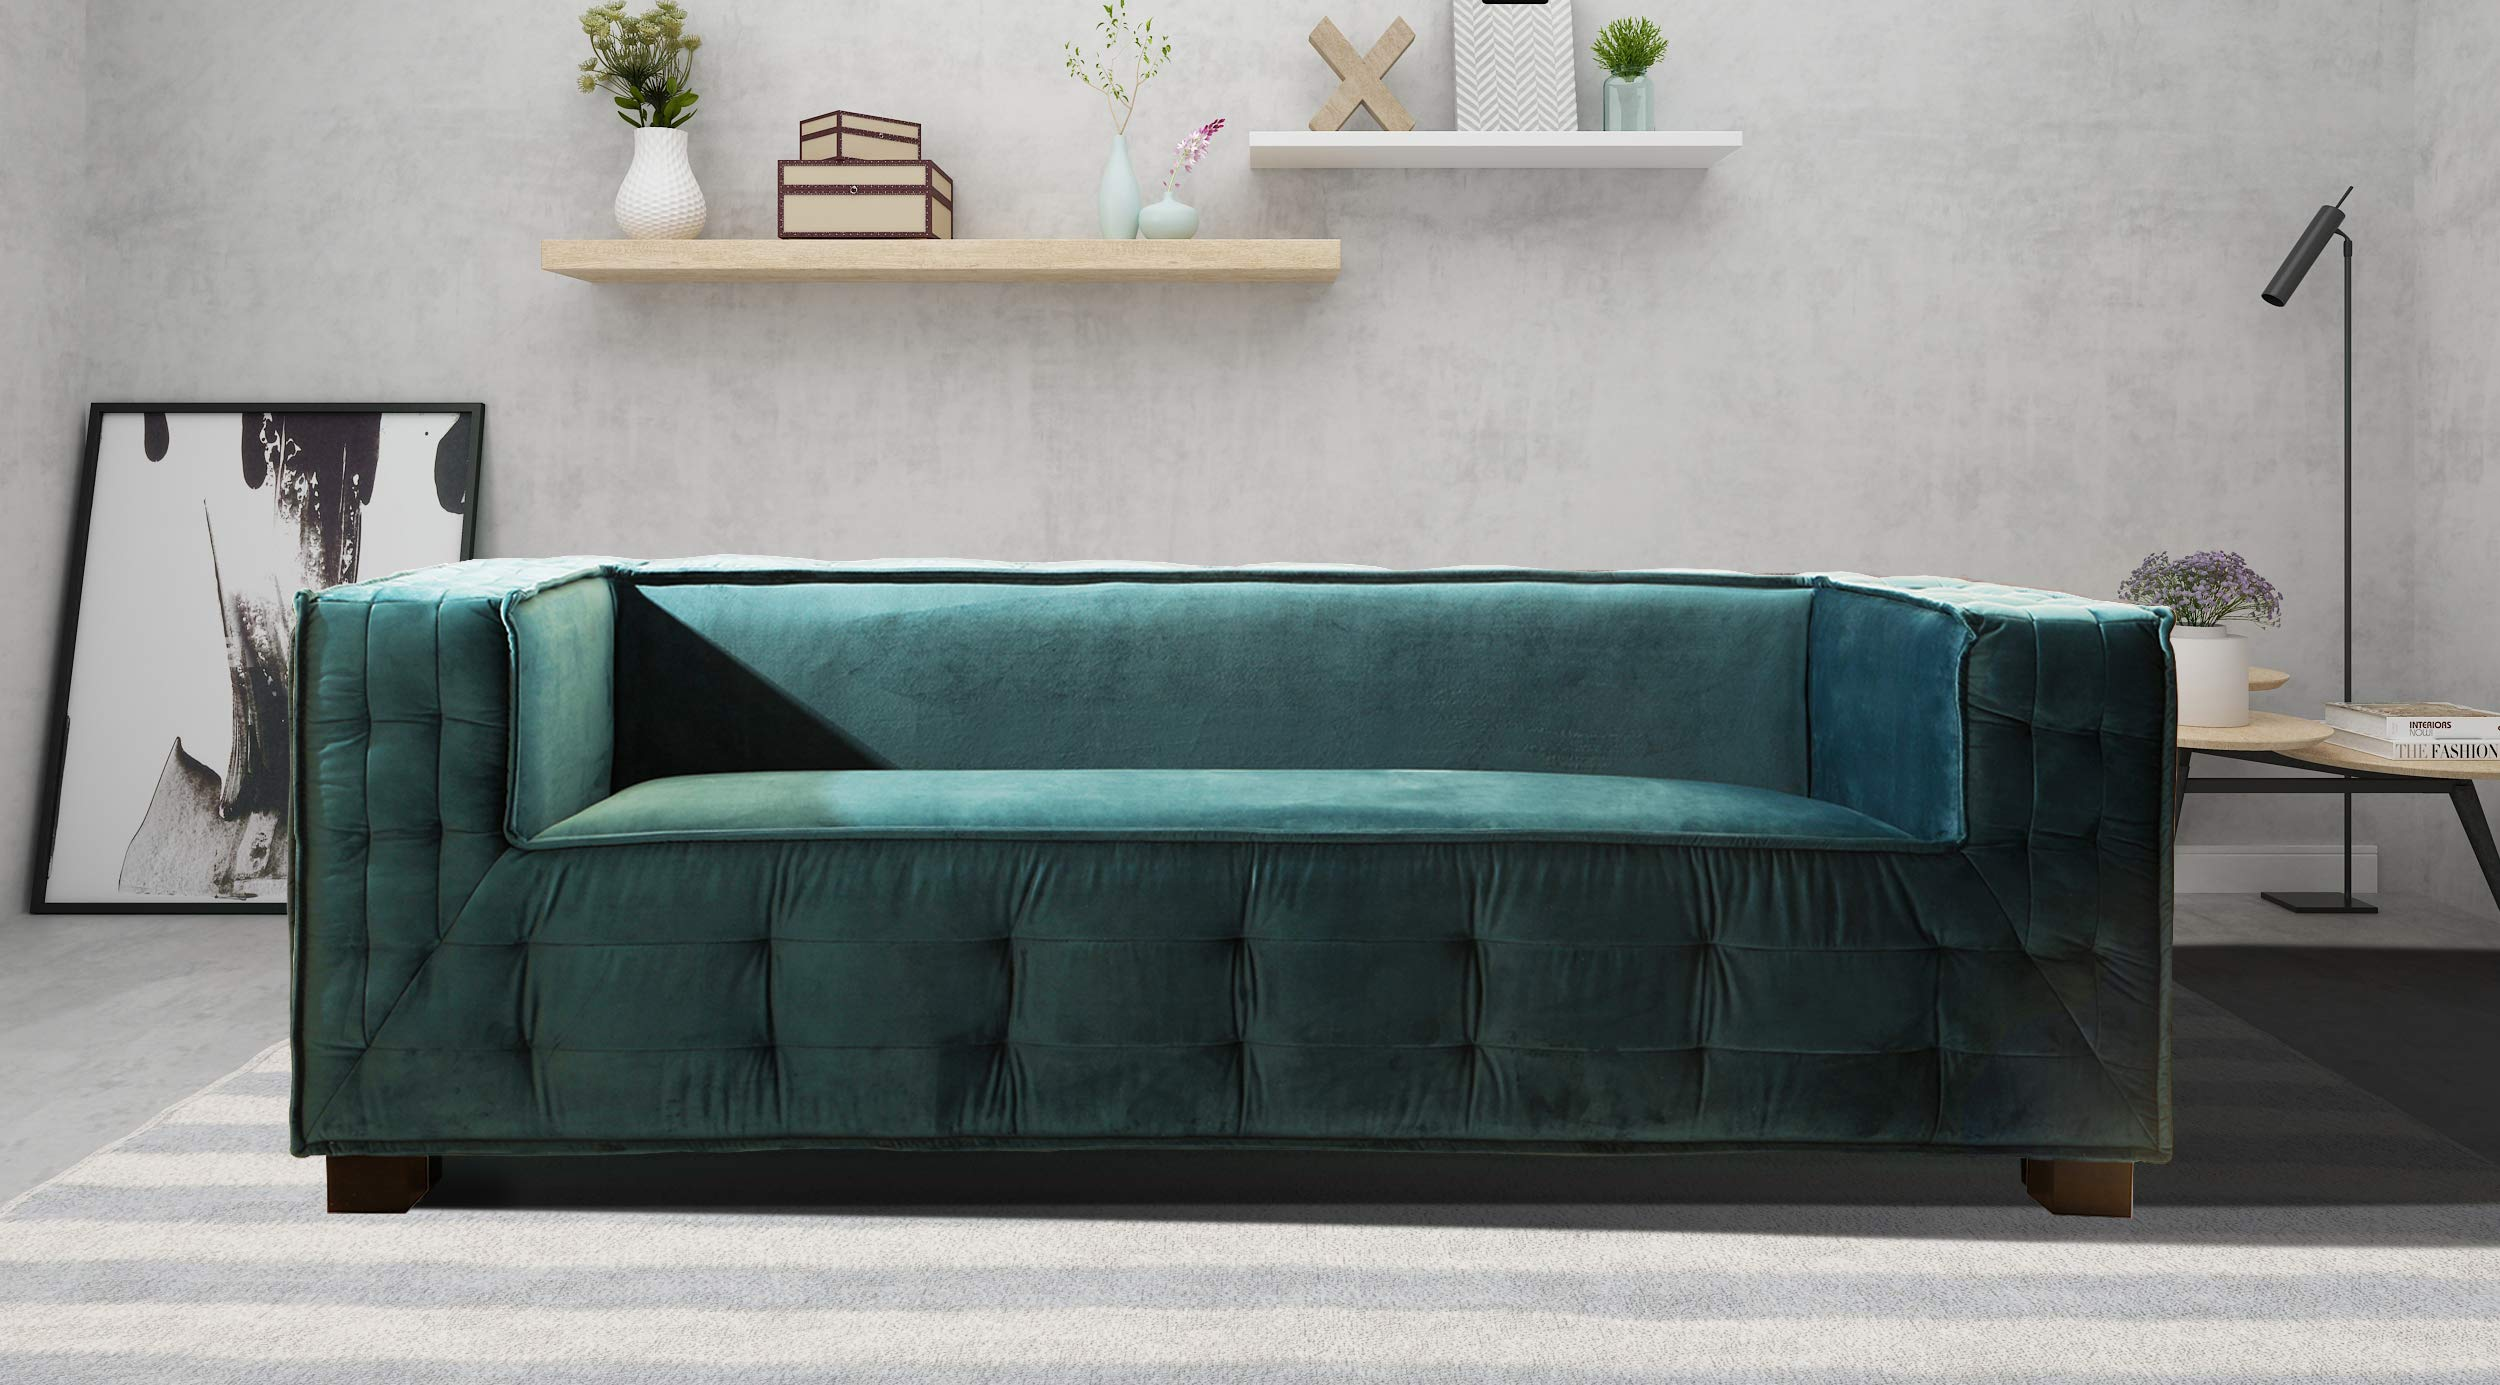 Iconic Home Bryant Sofa Velvet Upholstered Tufted Wide Armrest Tight Back Shelter Arm Design Espresso Finished Wooden Legs Modern Contemporary, BLUE by Iconic Home